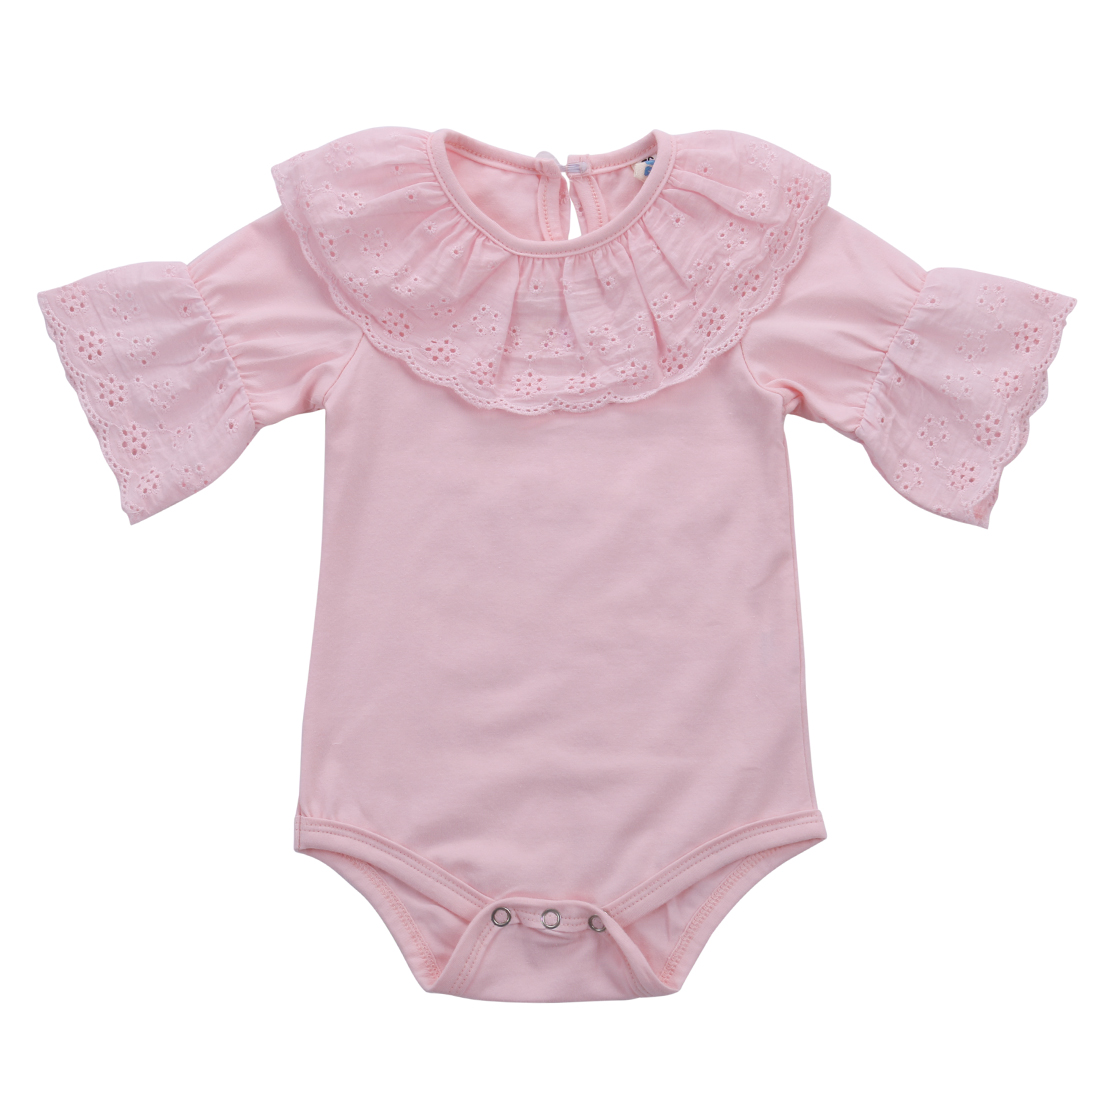 2016 Cute Baby Girls Clothes 0 18M Newborn Baby Bodysuit Summer Short Sleeve Lace Bodysuits Outfit